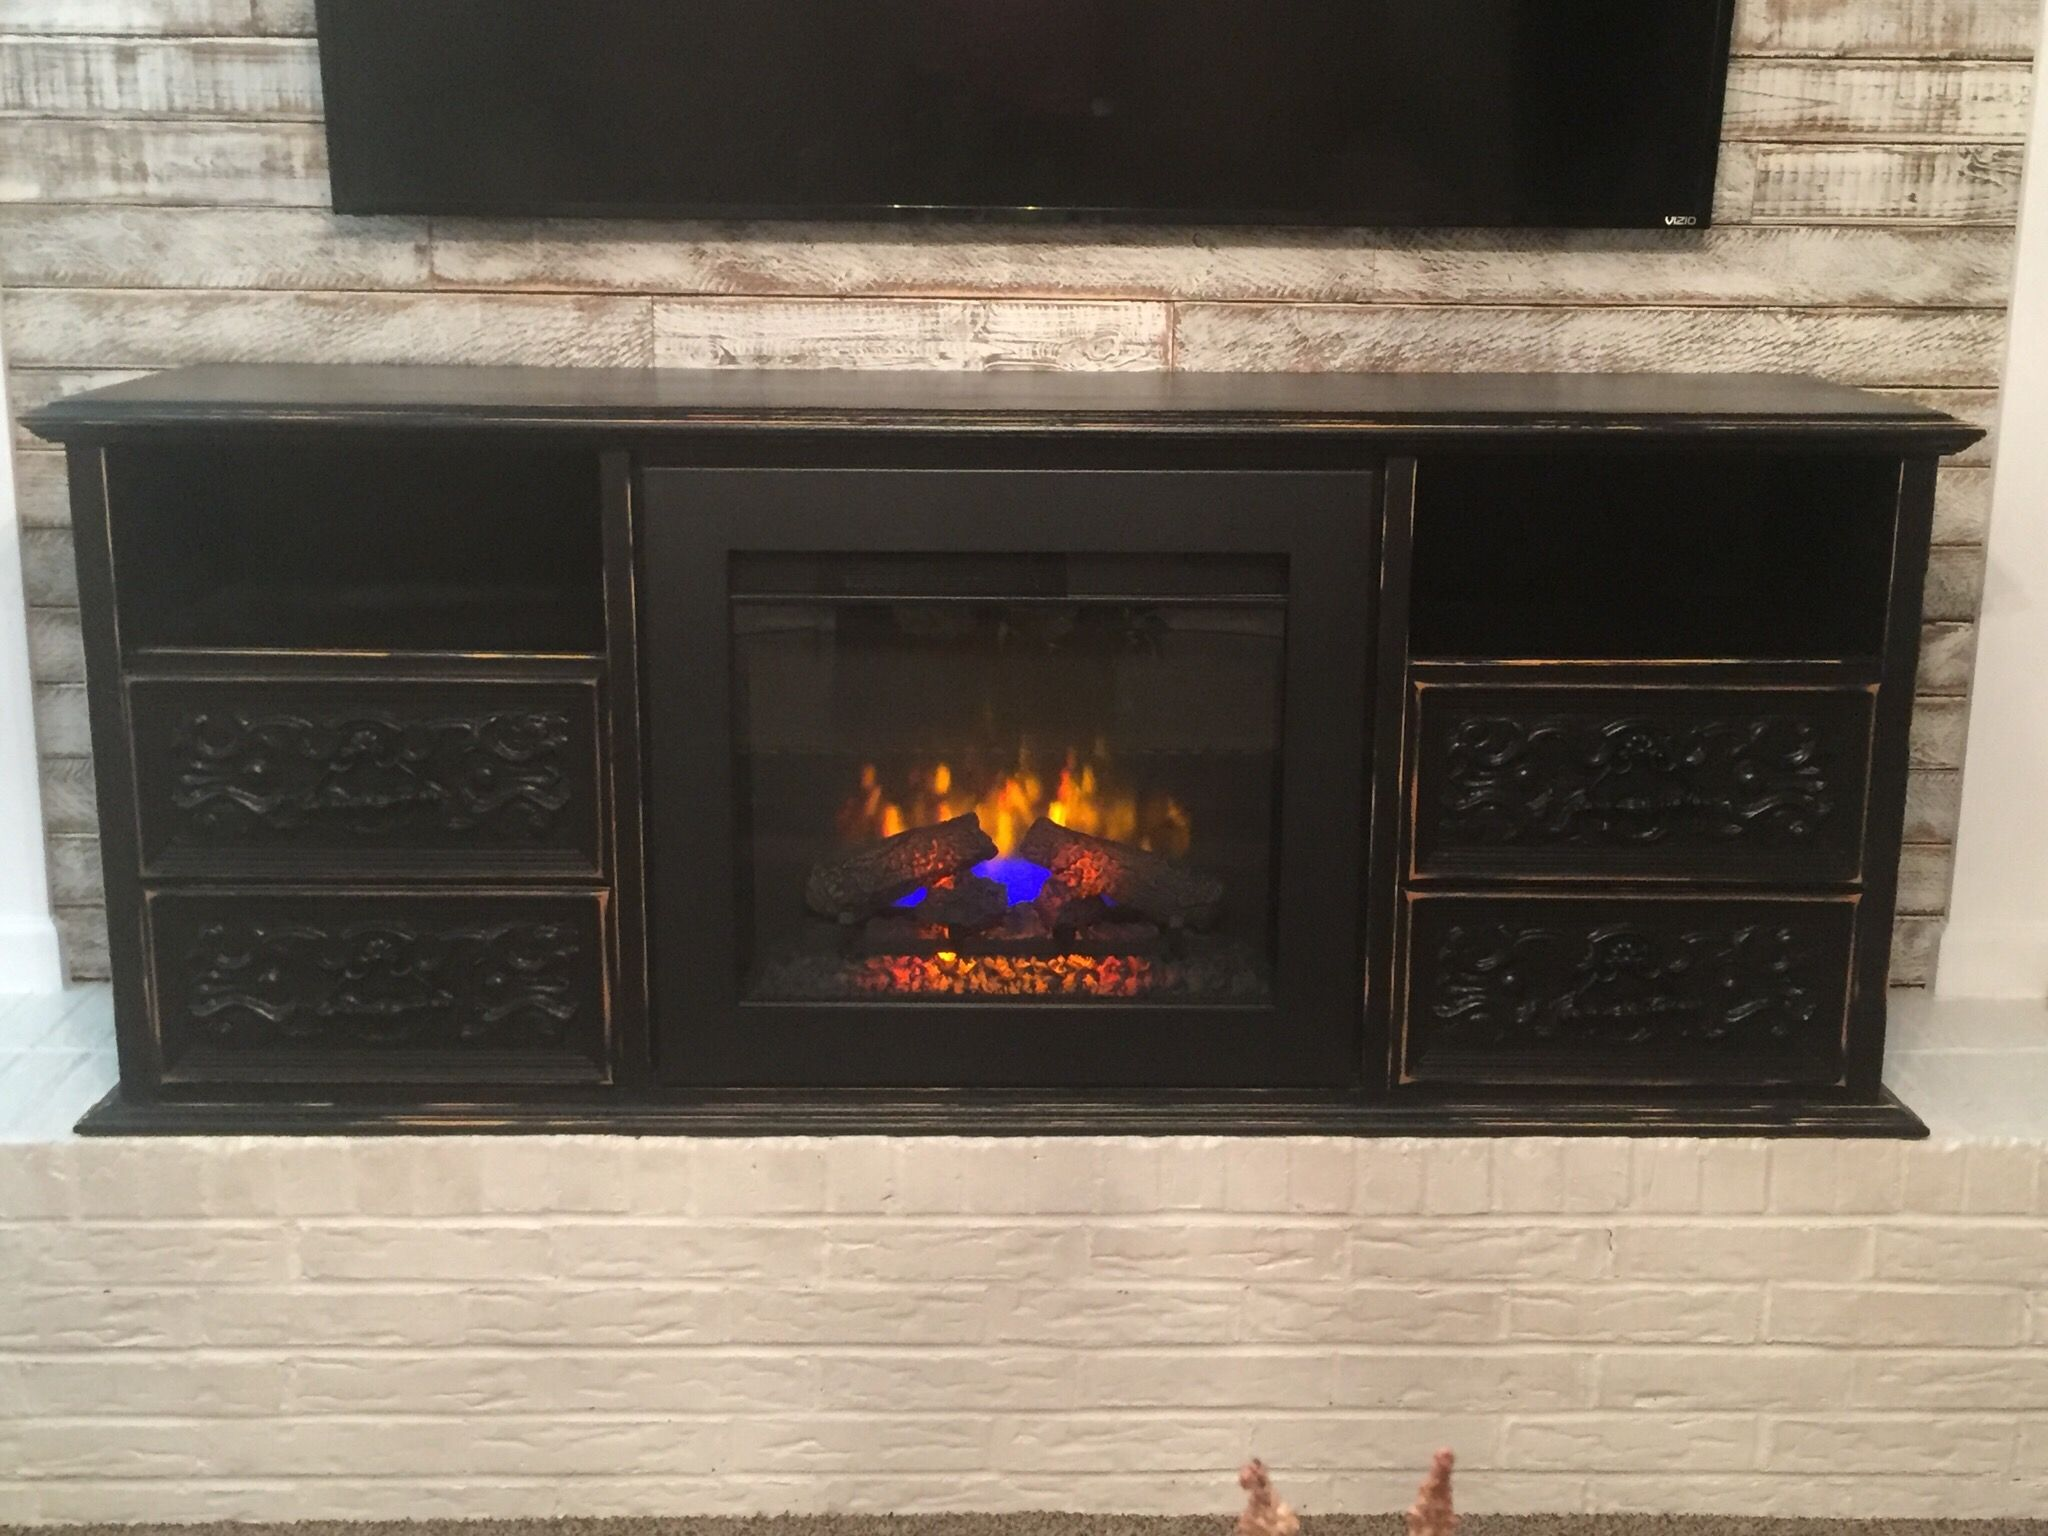 refurbished dresser to electric fireplace tv console pearls in the